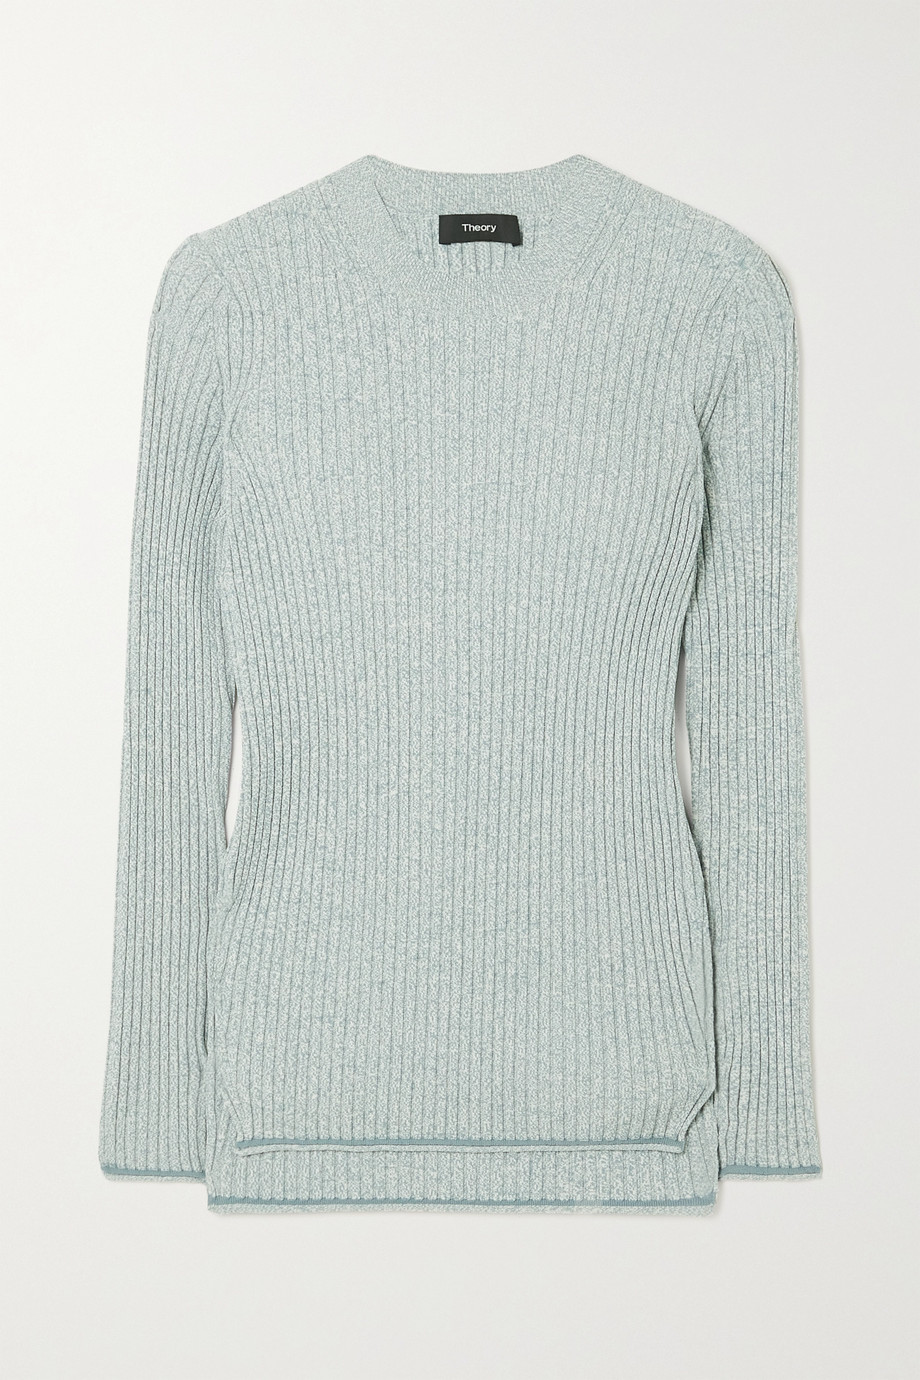 THEORY Mouline ribbed-knit sweater